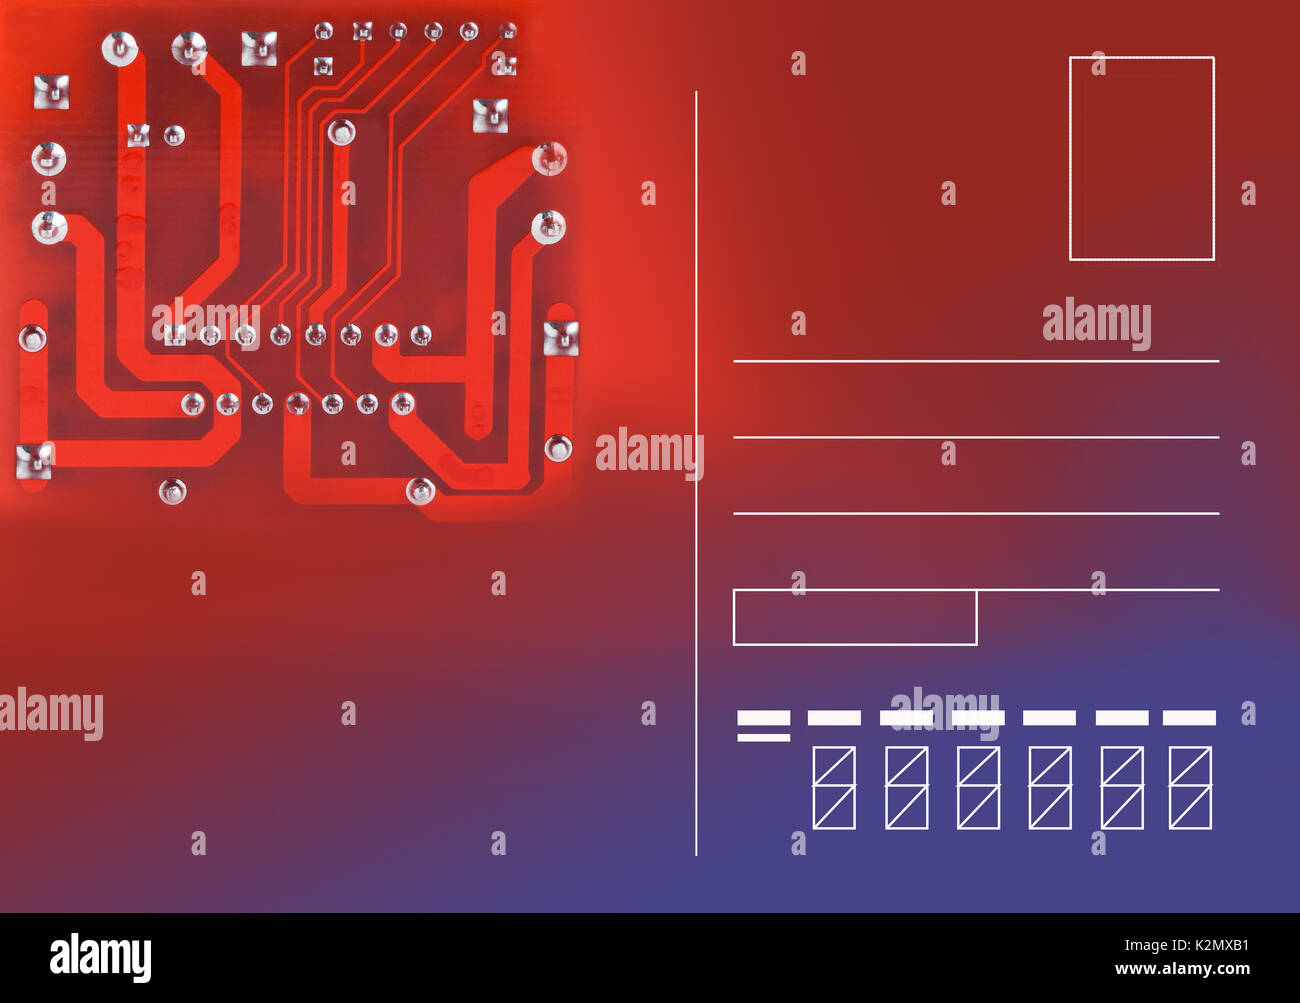 Modern Postcard Template With Electronic Circuit Chip Email Blank Concept Computer Micro Hardware Component On Red Violet Gradient Background